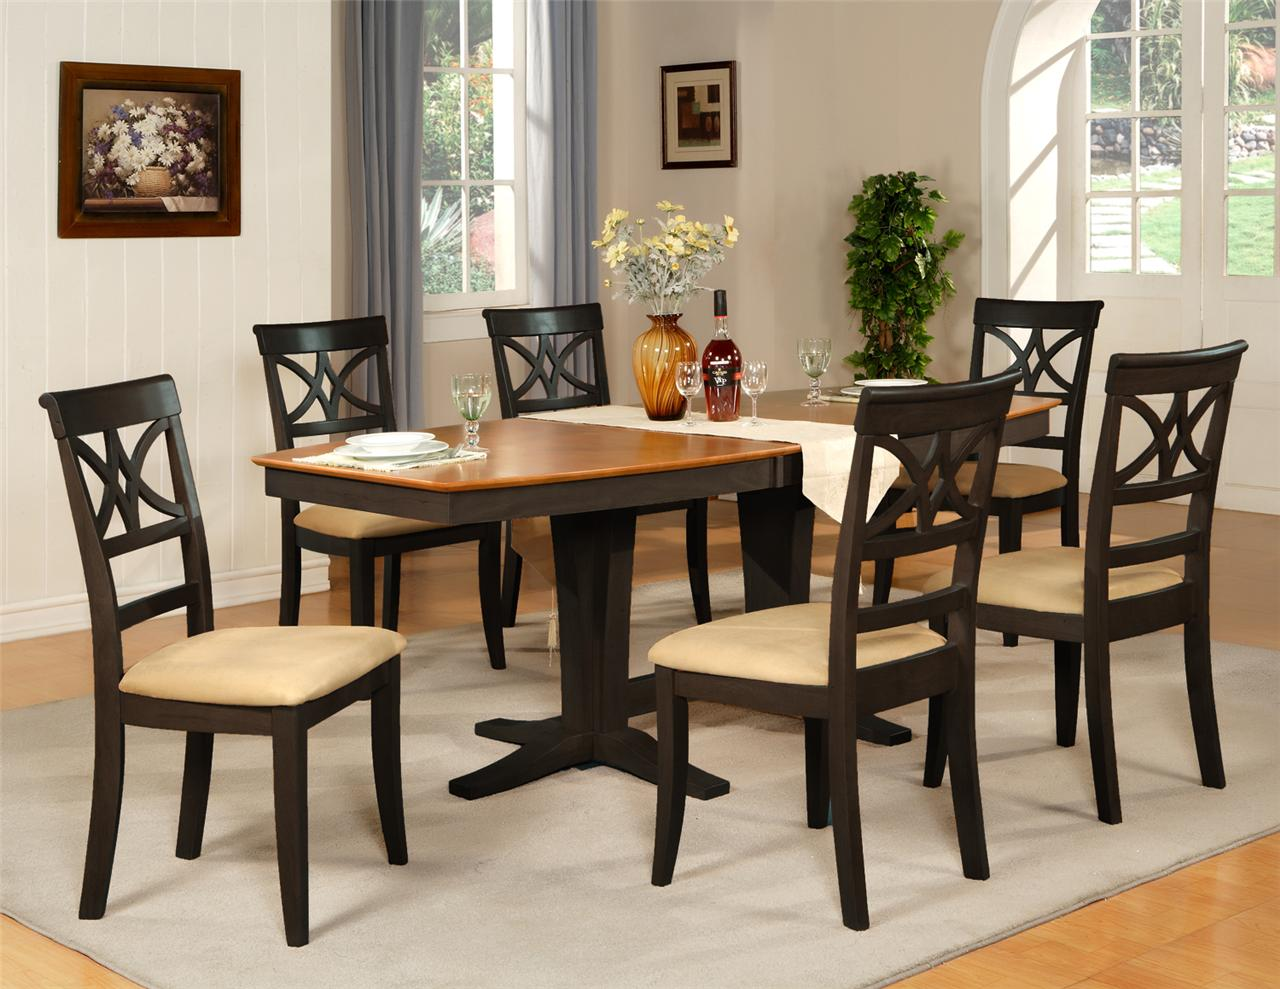 Dining room table with chairs 2017 grasscloth wallpaper for 8 chair dining room table